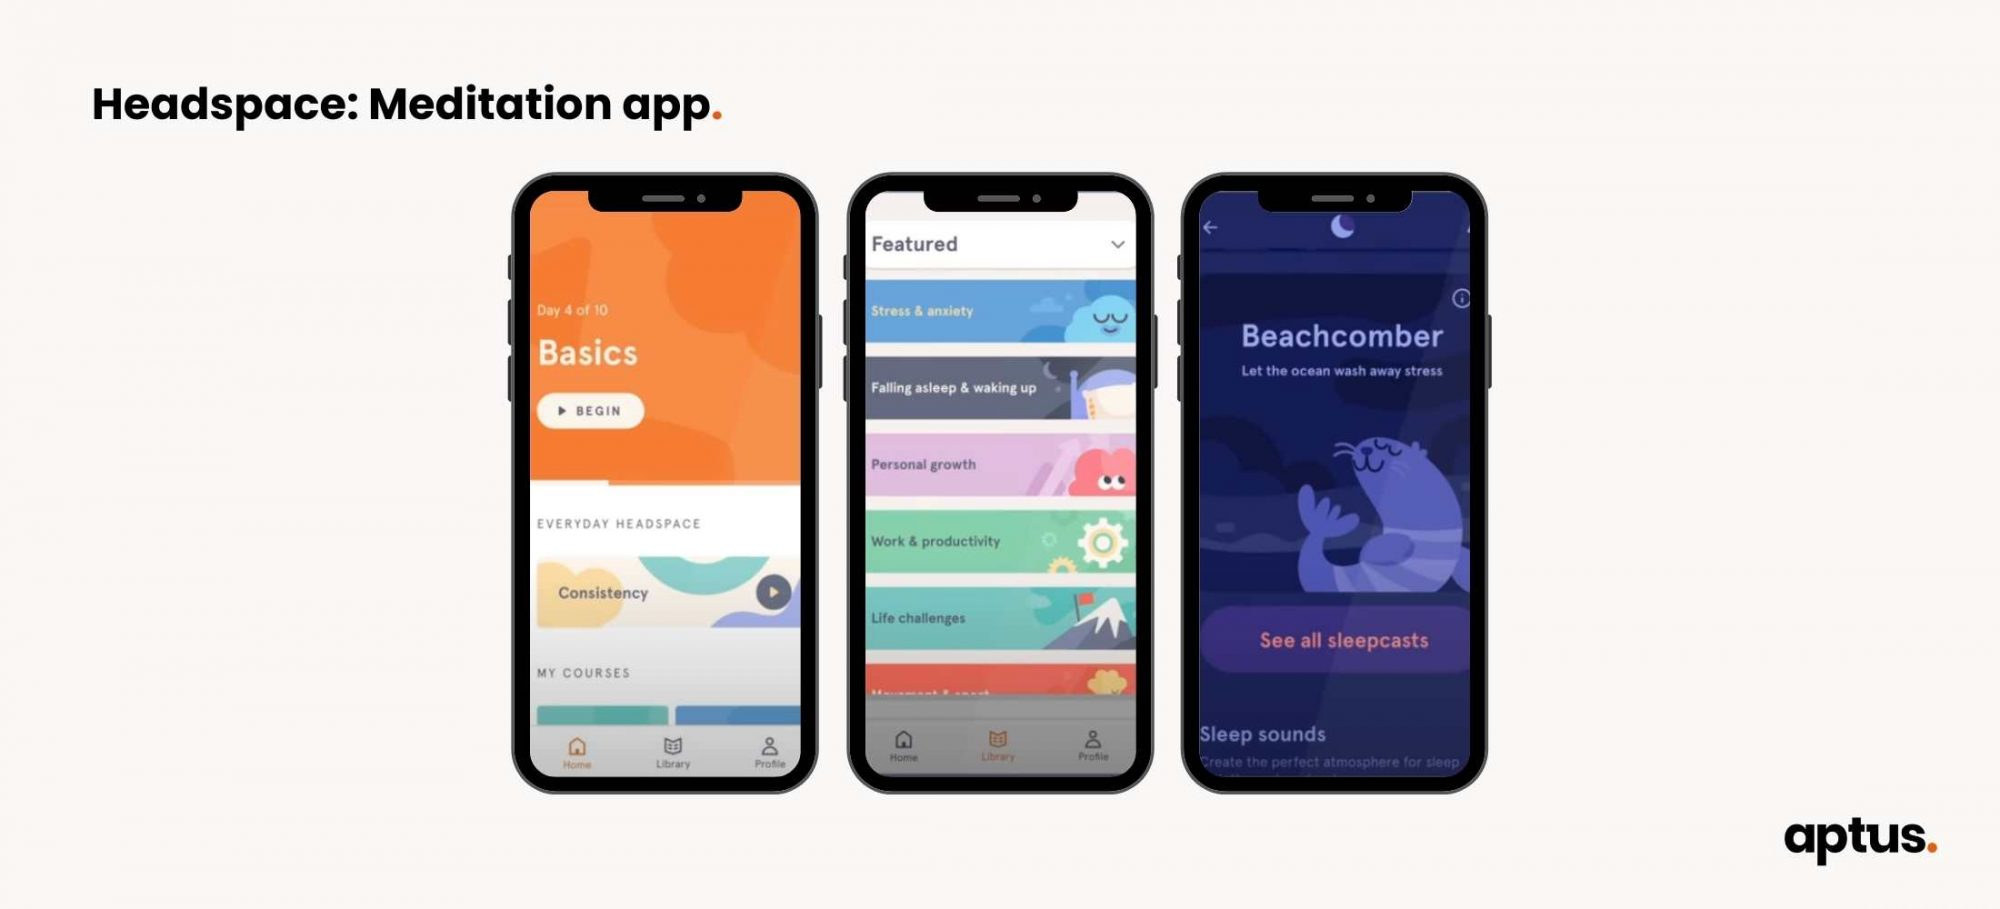 headspace app interface